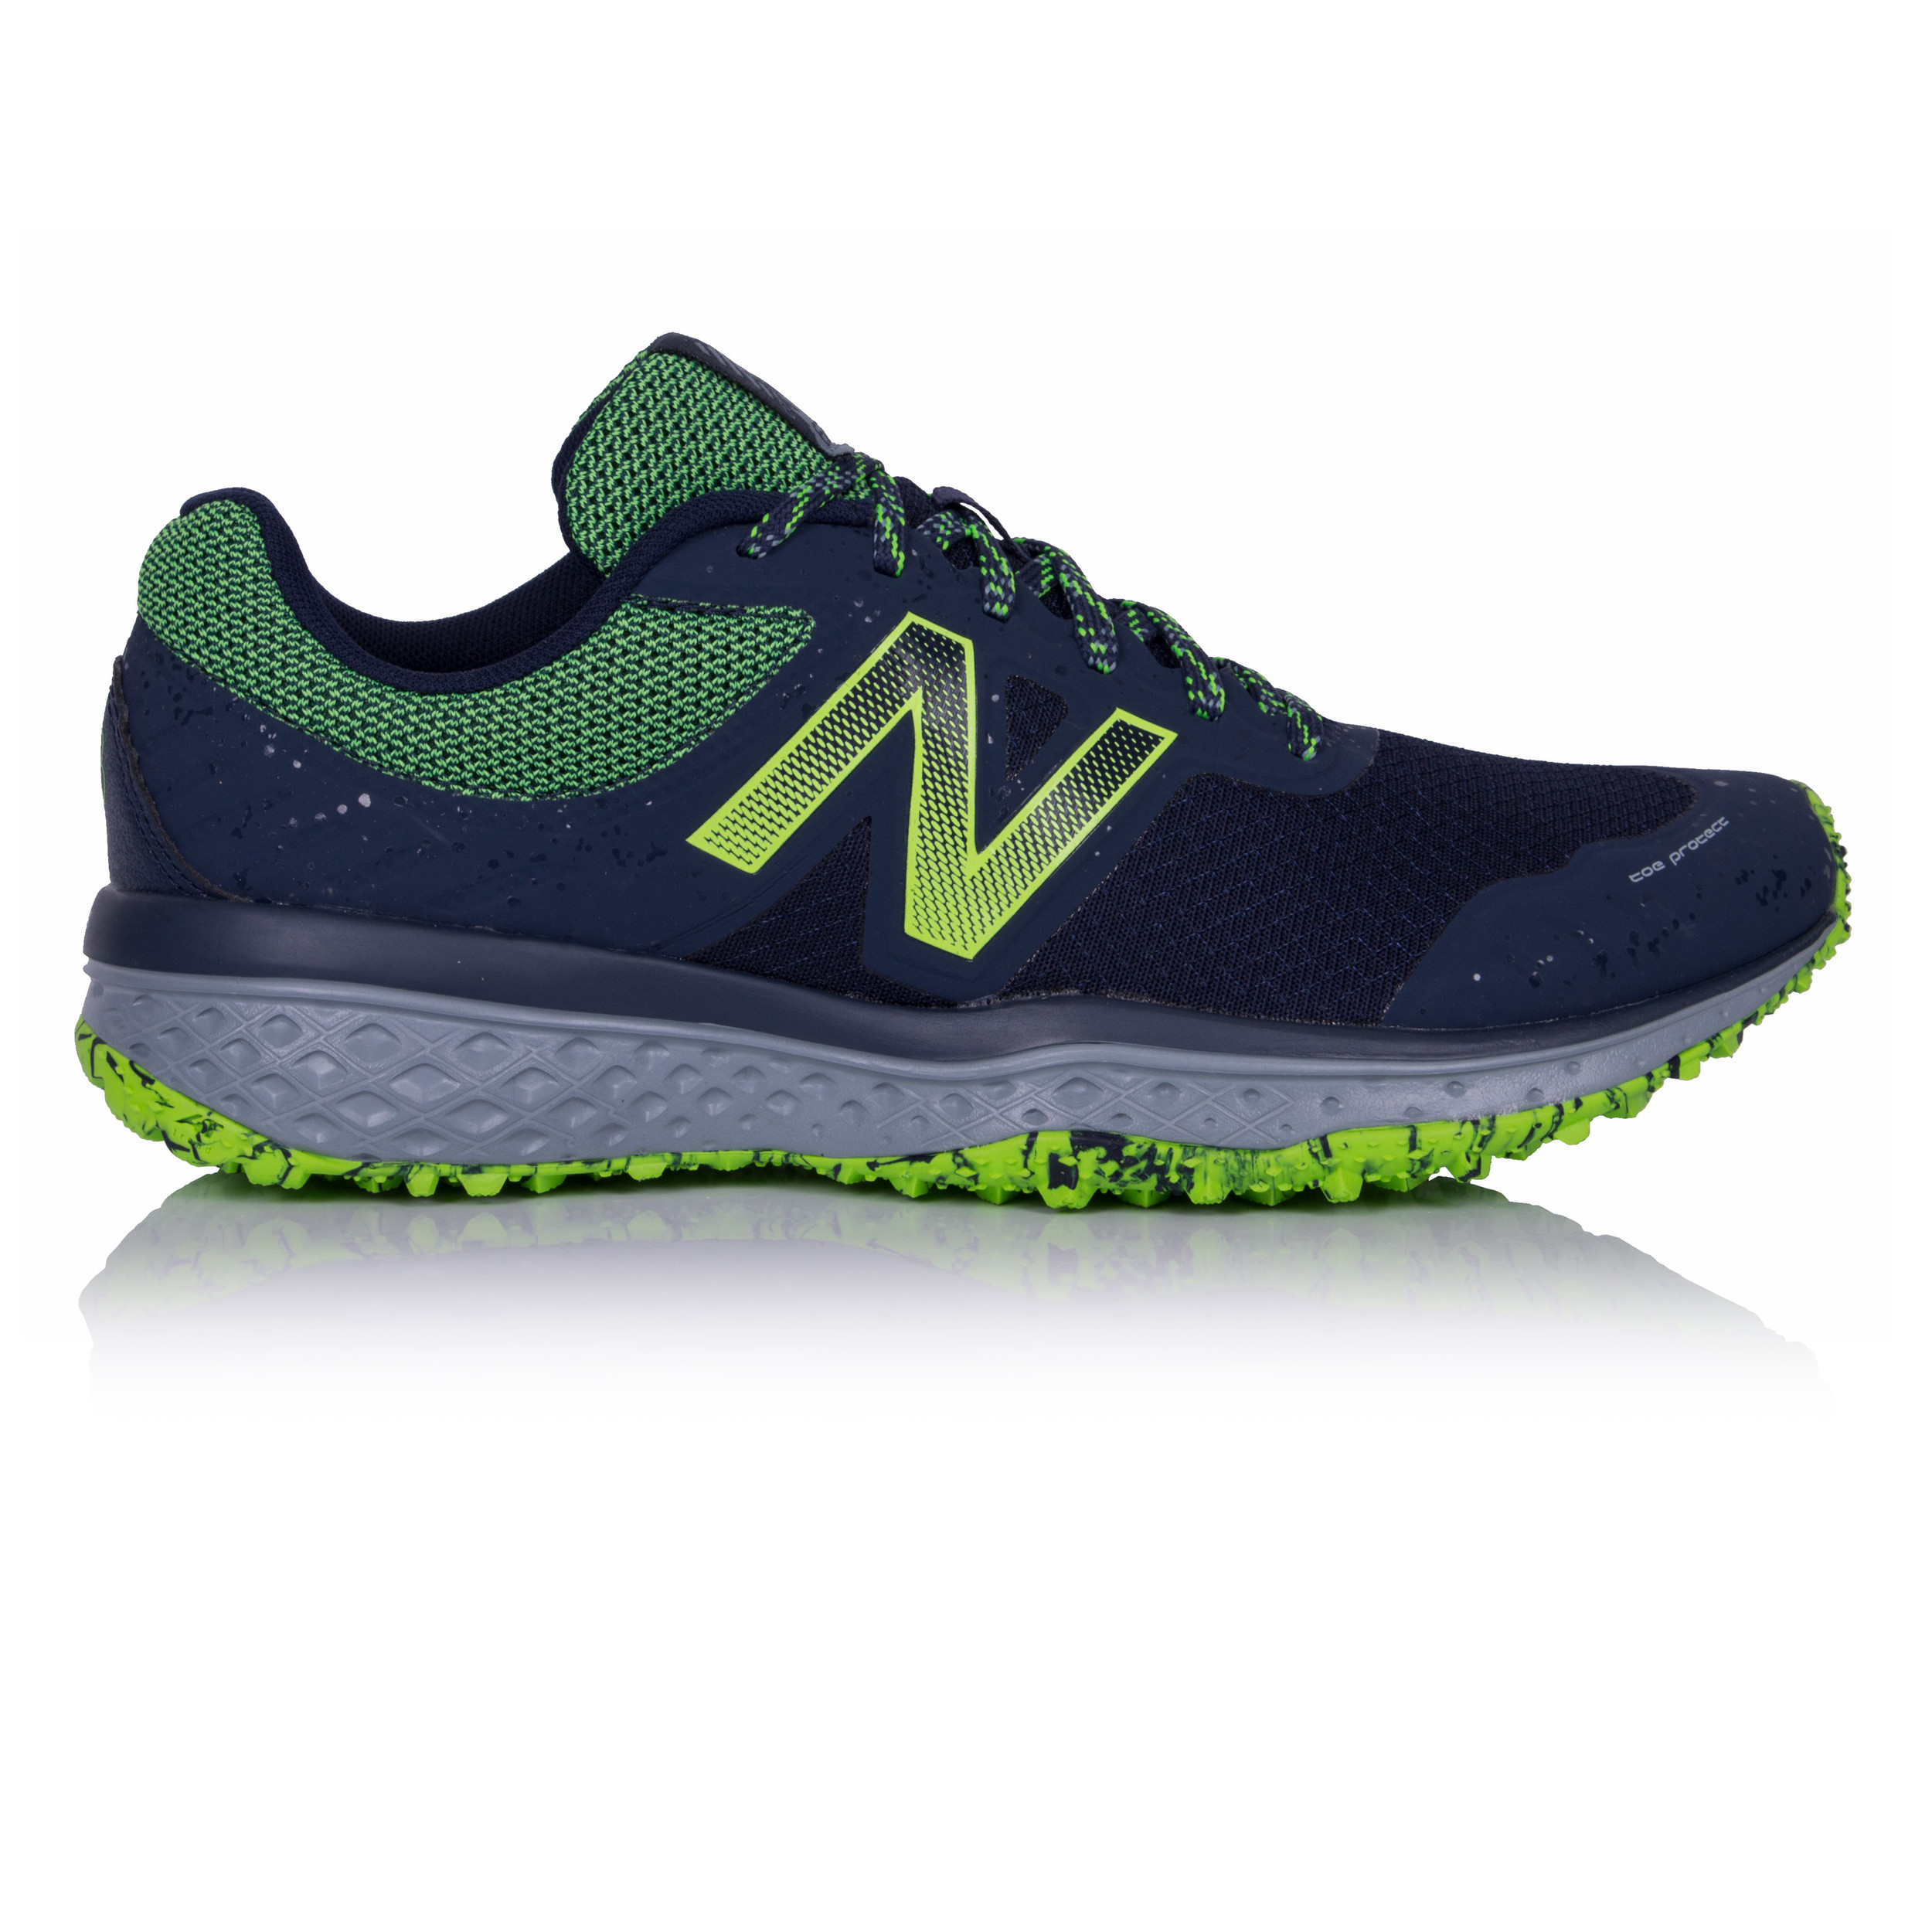 New Balance U420 Unisex Lightweight Breathable Men Sport Shoes Running Sneakers